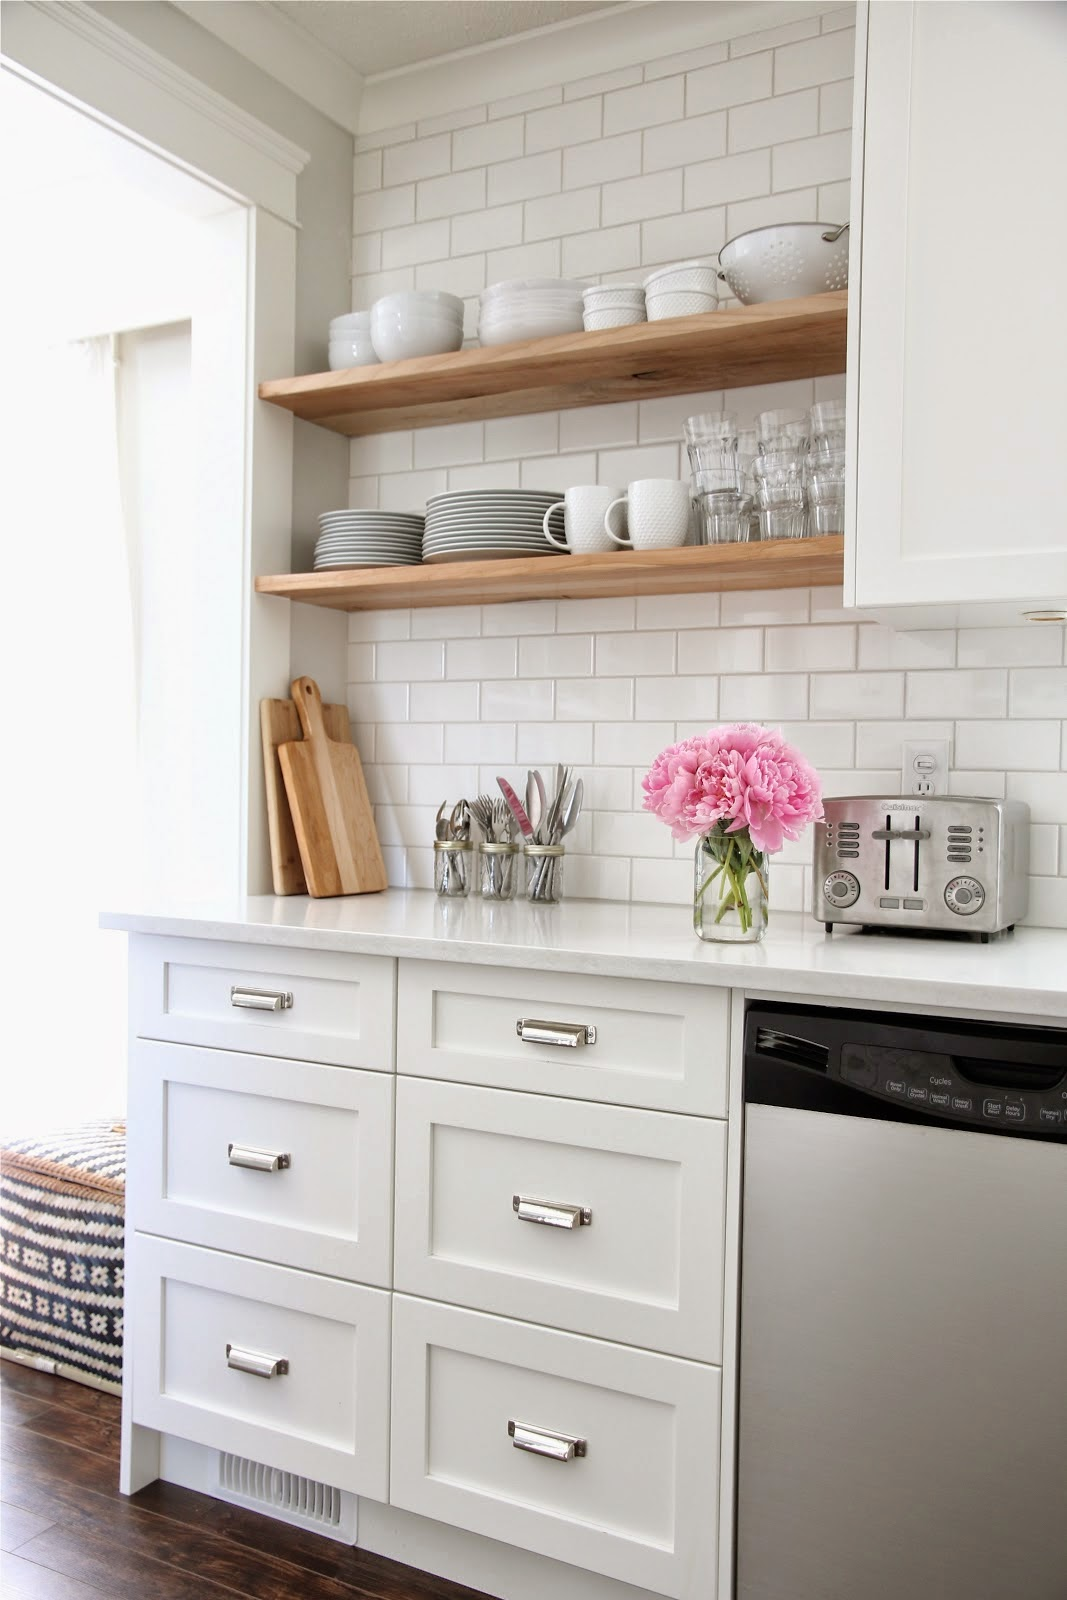 White Subway Tile Kitchen www.olivelaneinteriors.com